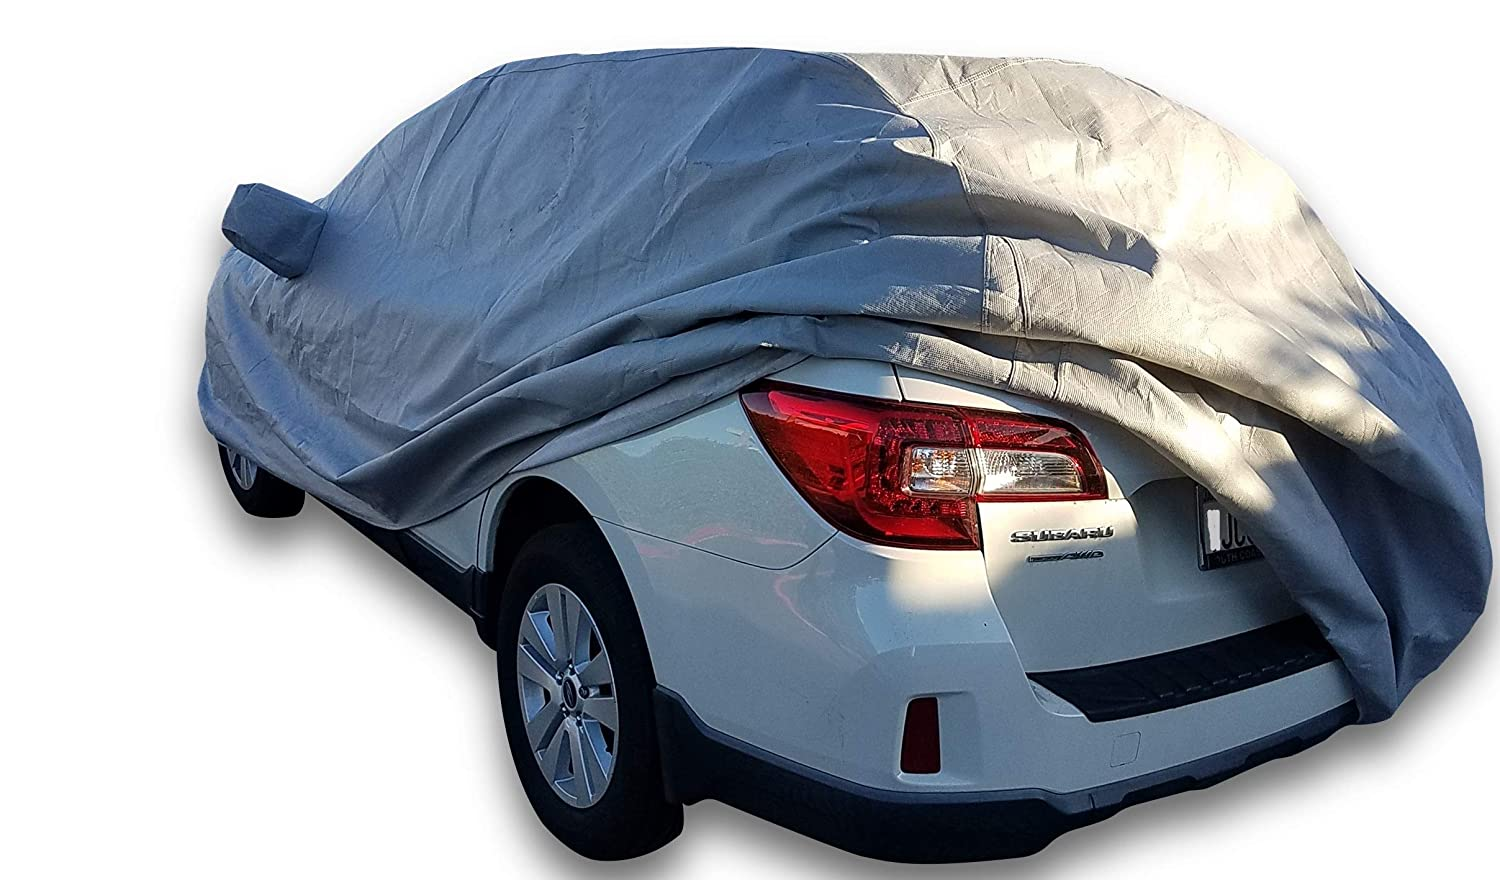 DMB Pro Outdoor Car Cover for 2010-2020 Subaru Outback Outdoor Car Body Cover Custom Fit All Weather Waterproof Heavy Duty